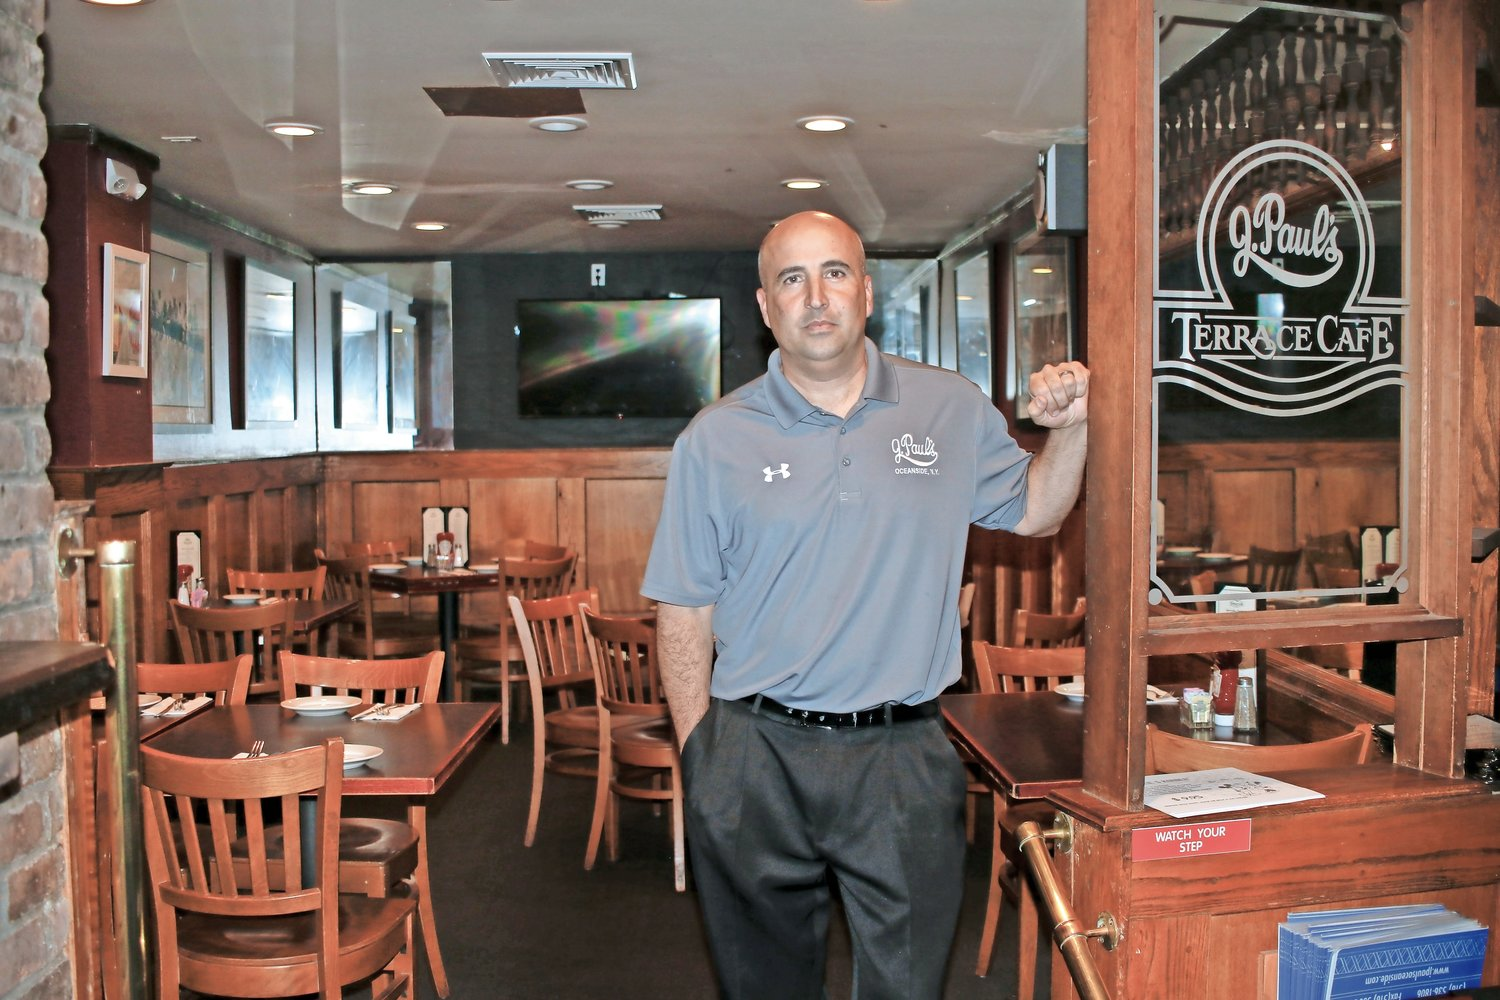 Joe Bonin, owner of J. Paul's Terrace Café in Oceanside, has opened the restaurant for takeout only. Other restaurants in the area have closed until further notice.